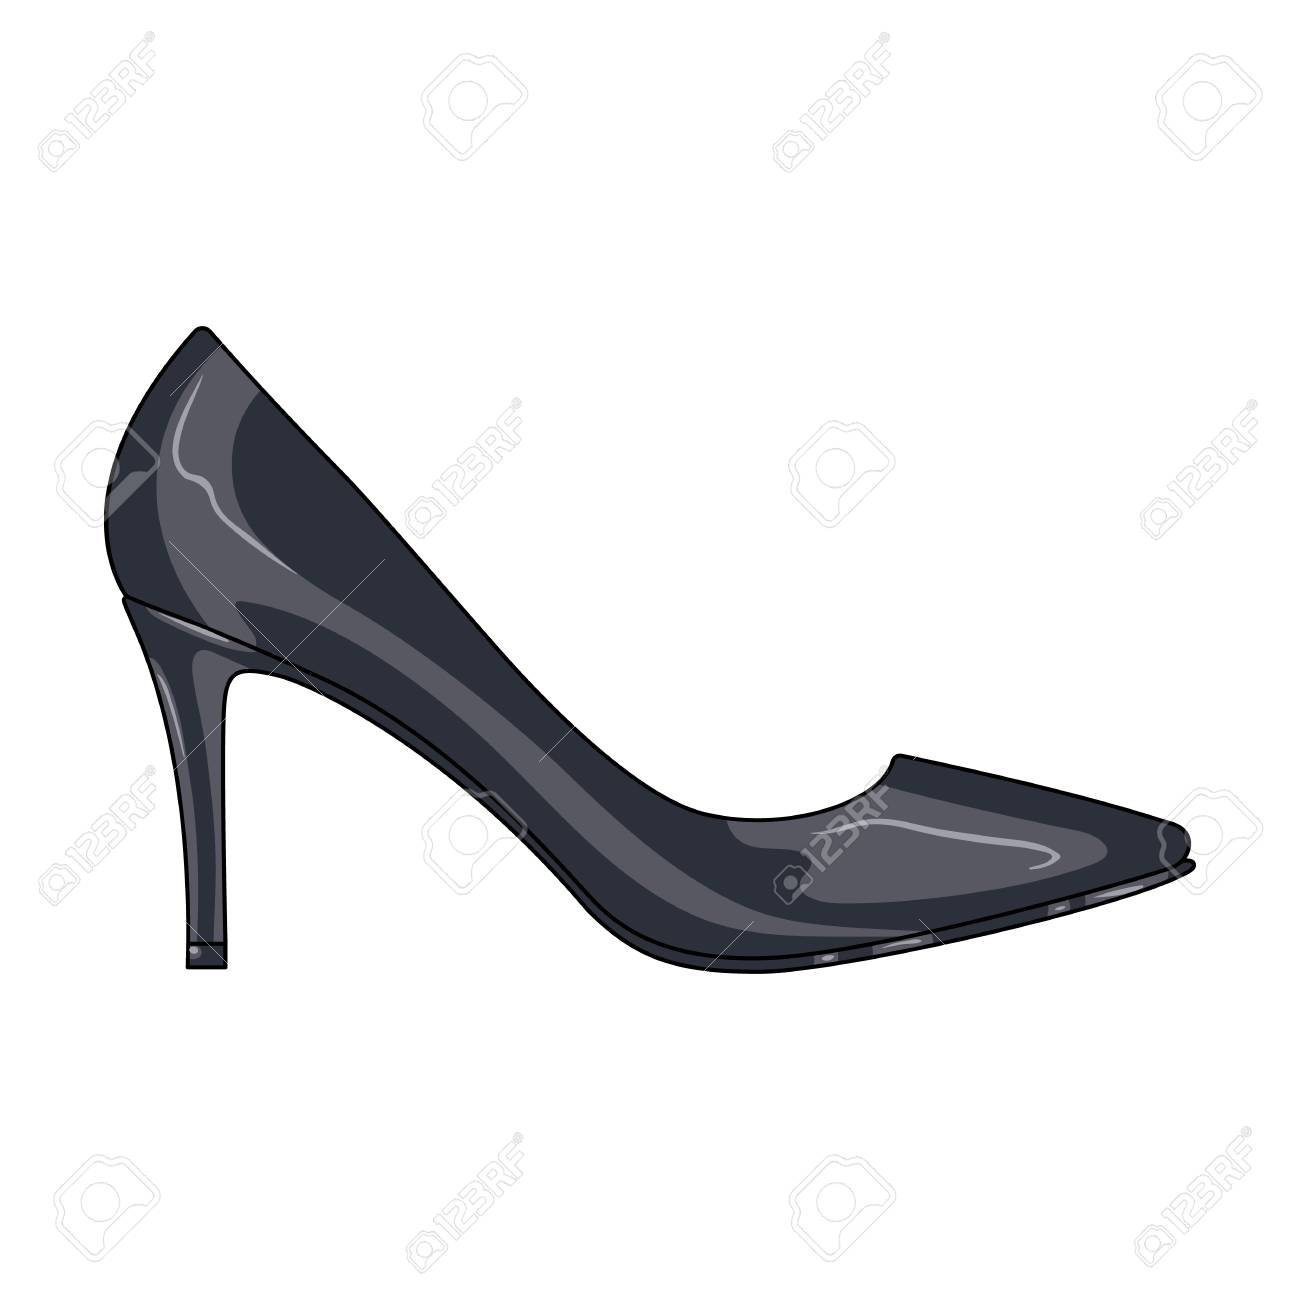 4a8cfadc8452 Black women s high heel shoes exit in a dress. Different shoes single icon  in cartoon